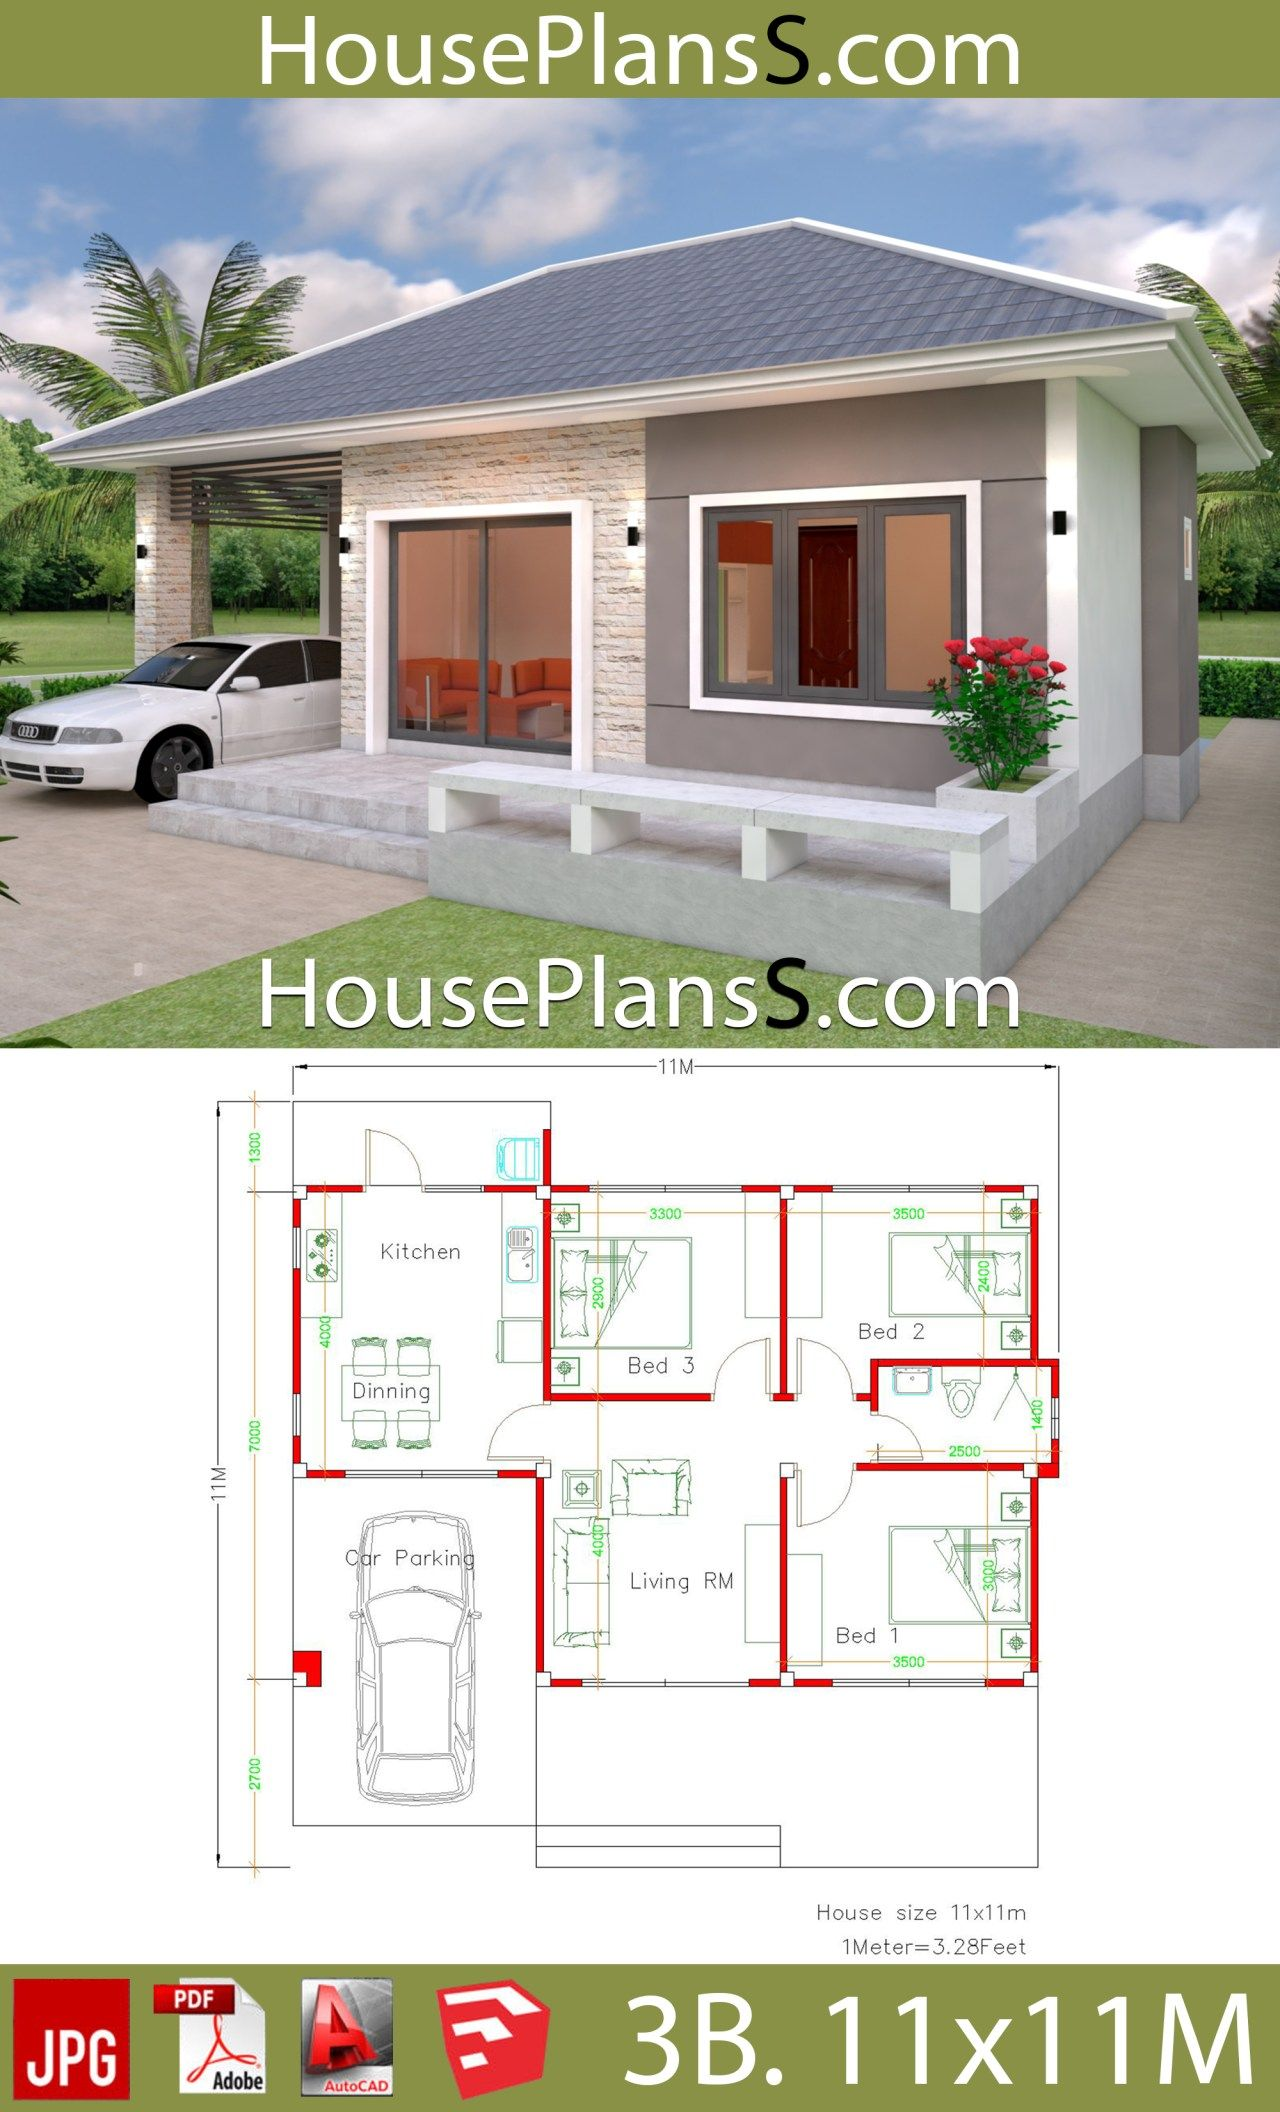 Simple House Design Plans 11x11 With 3 Bedrooms Full Plans